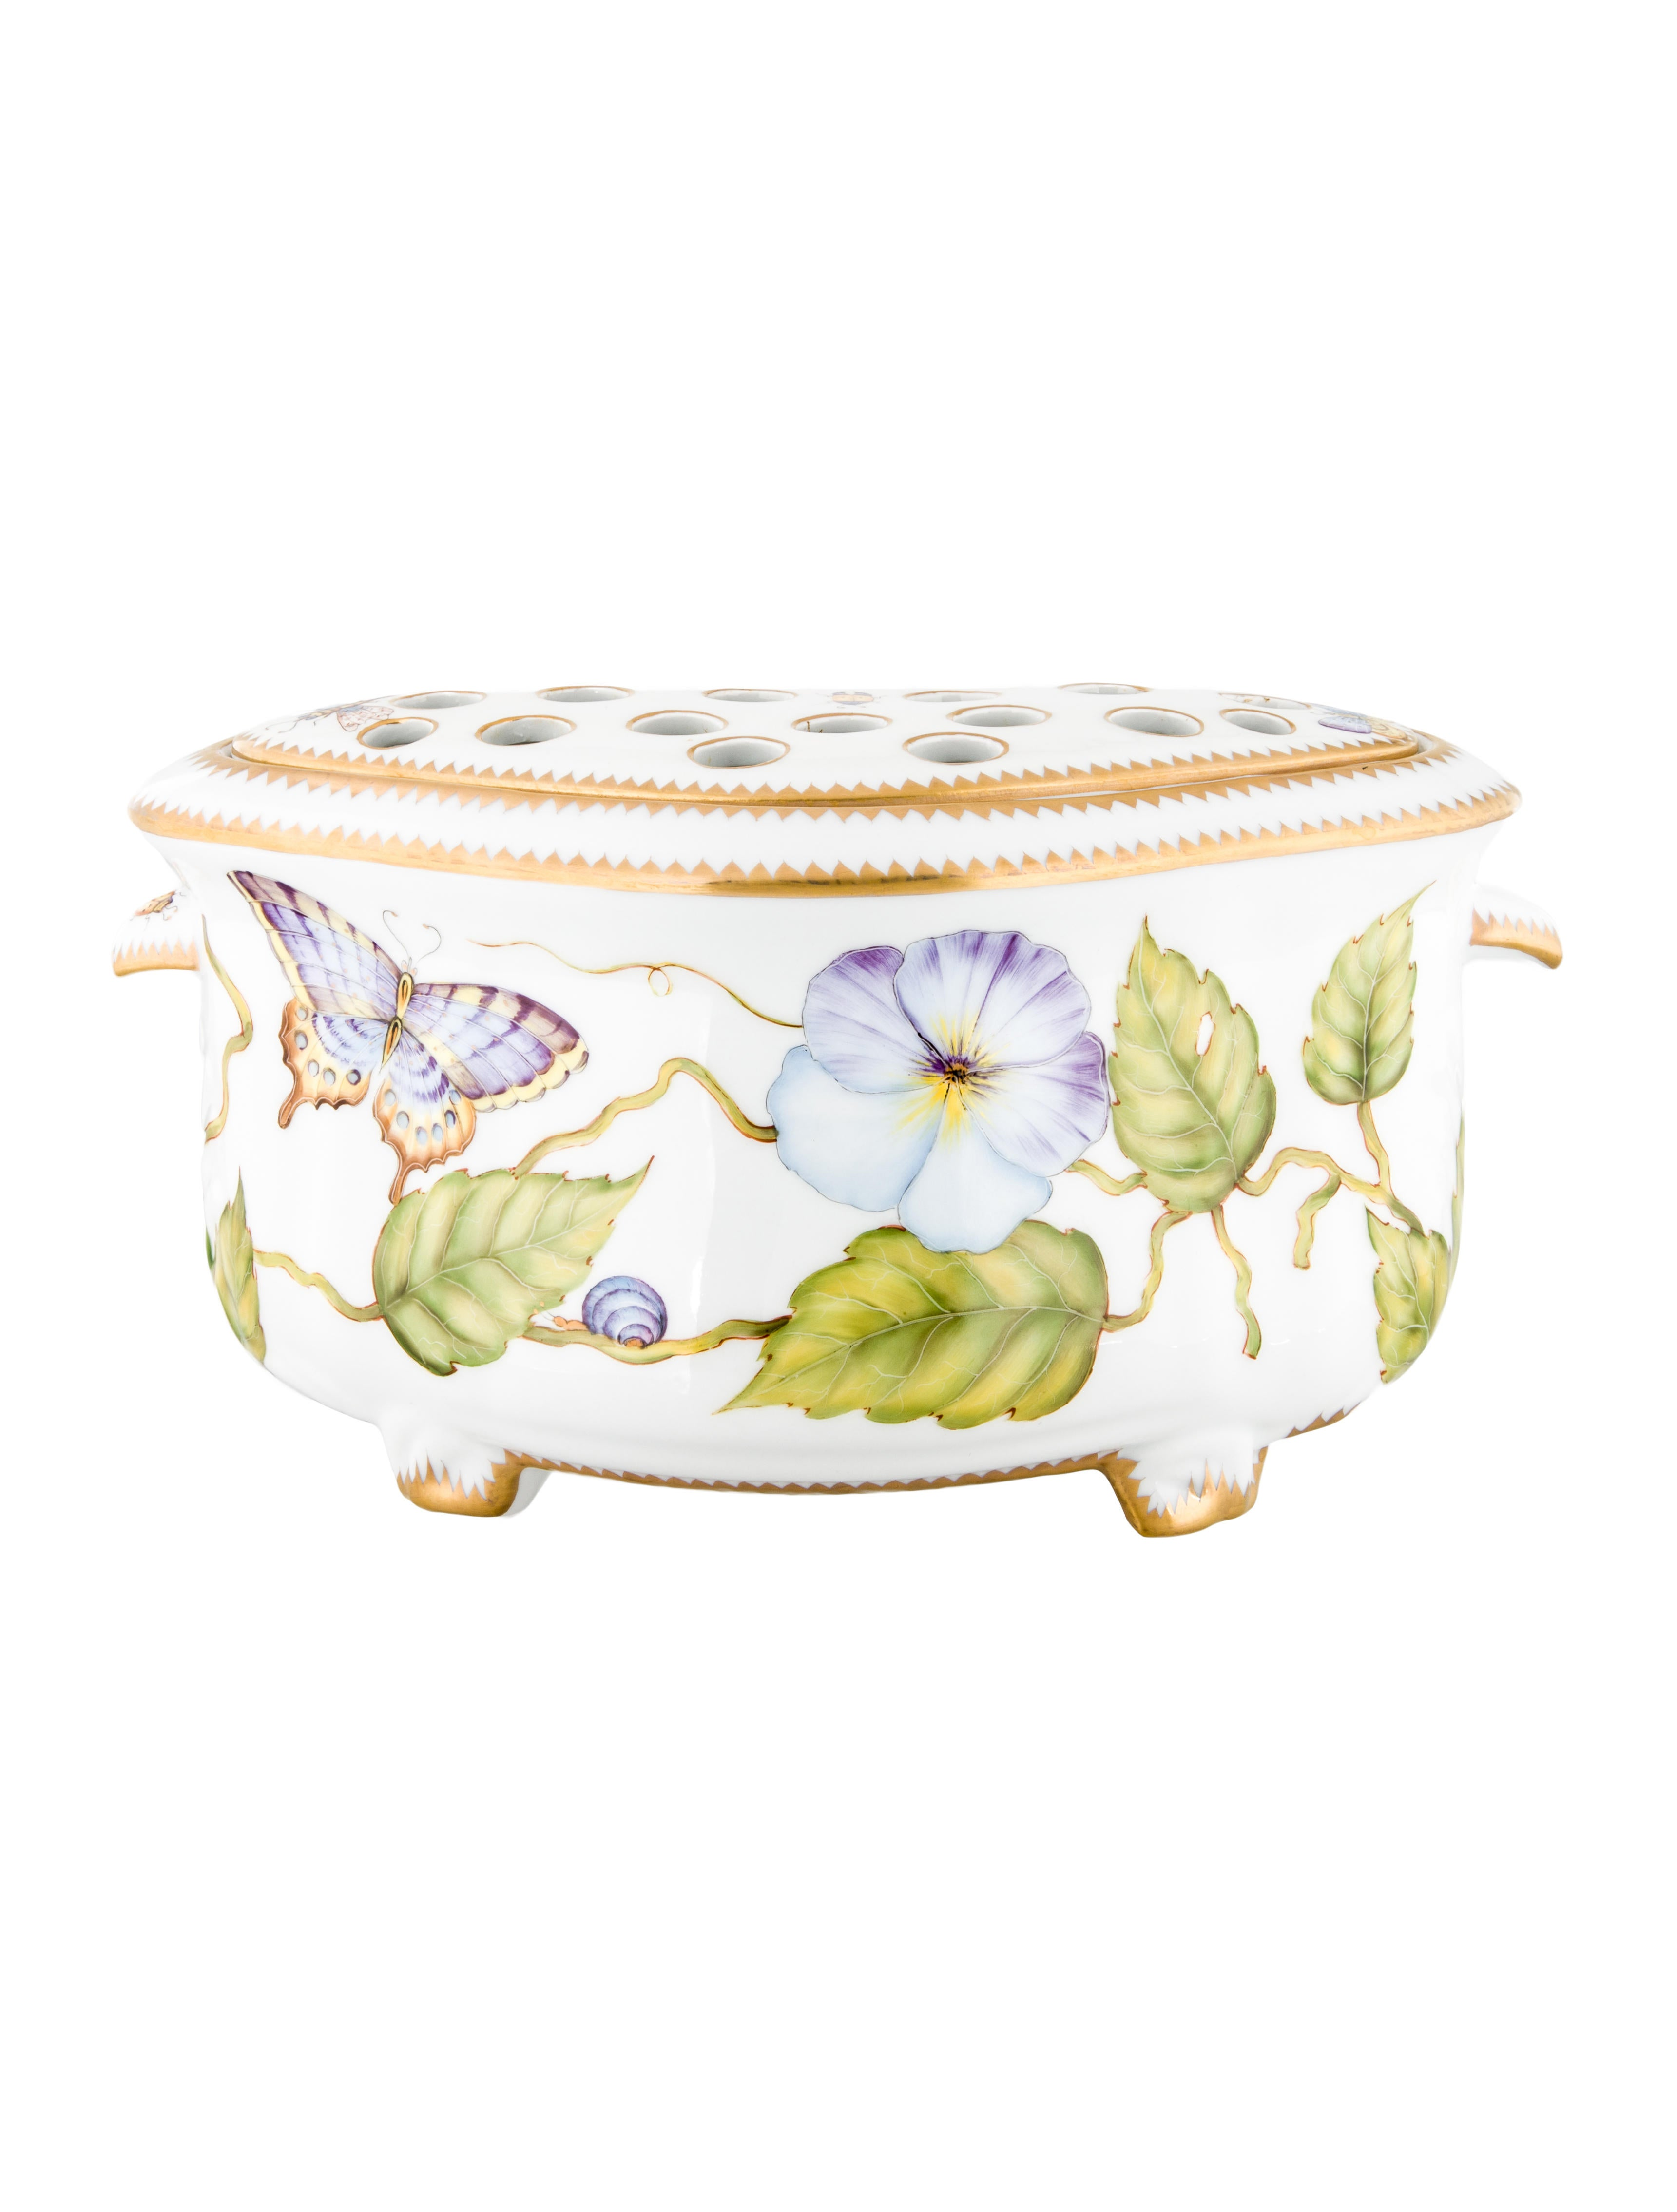 Anna weatherley garden party centerpiece flower holder - Garden decor accessories ...